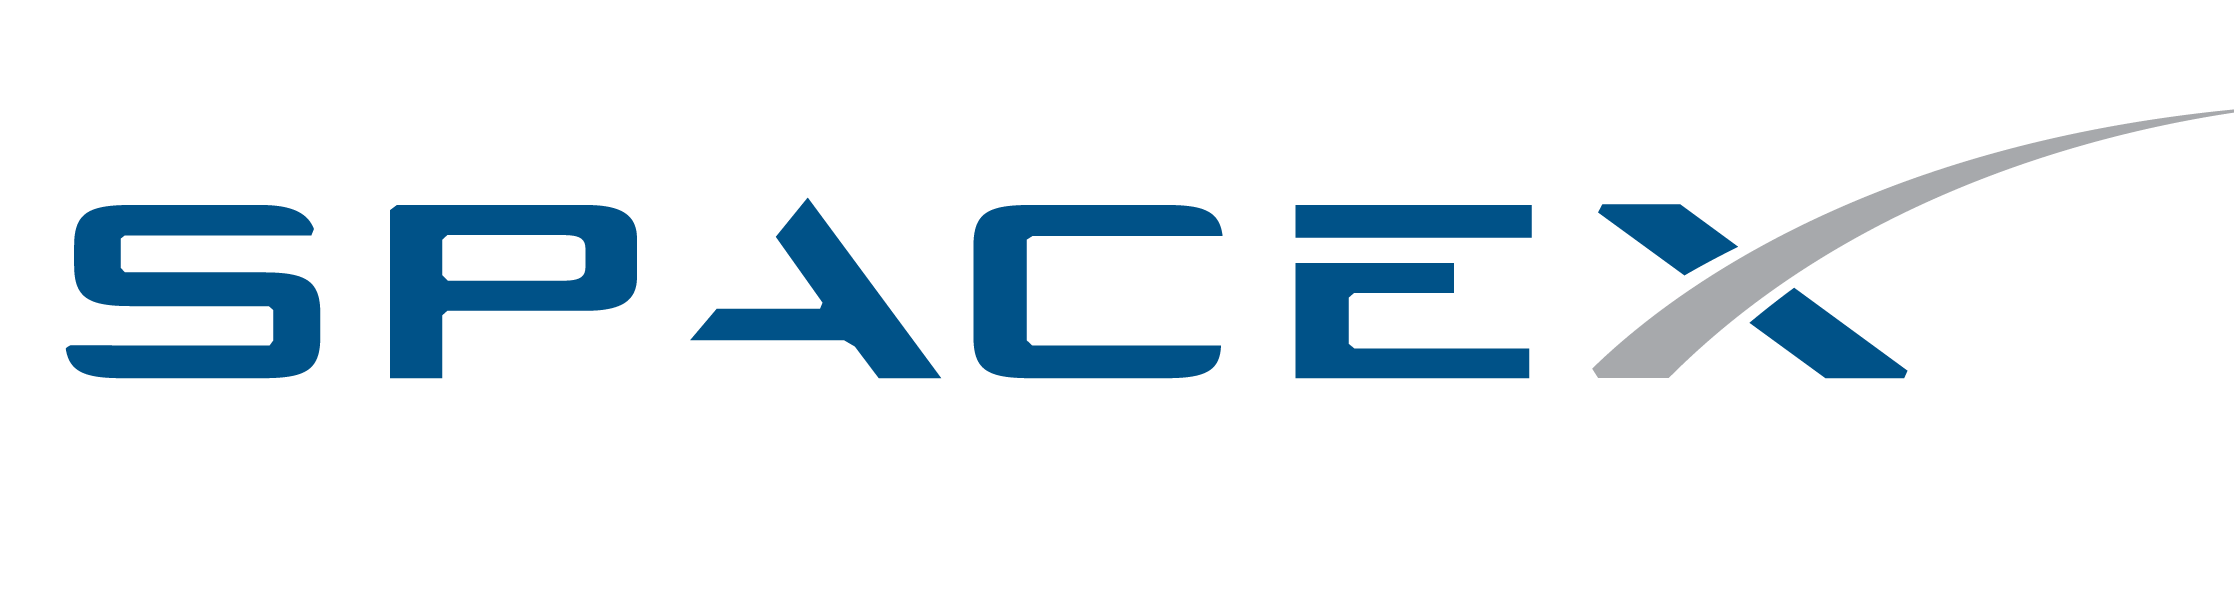 SpaceX Company Profile: Valuation & Investors | PitchBook